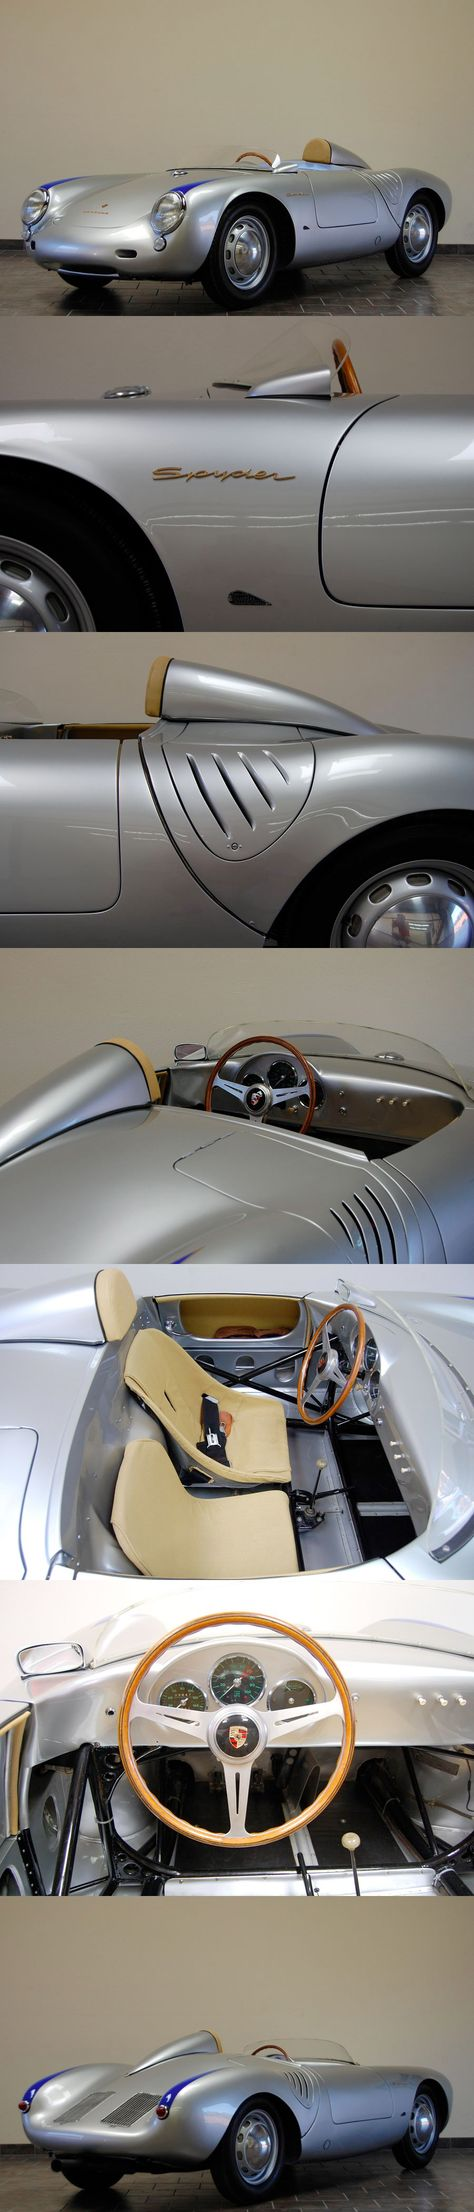 1957 Porsche RS 550A Spyder  fuuuck yes! Sleek like a bullet. Top faves